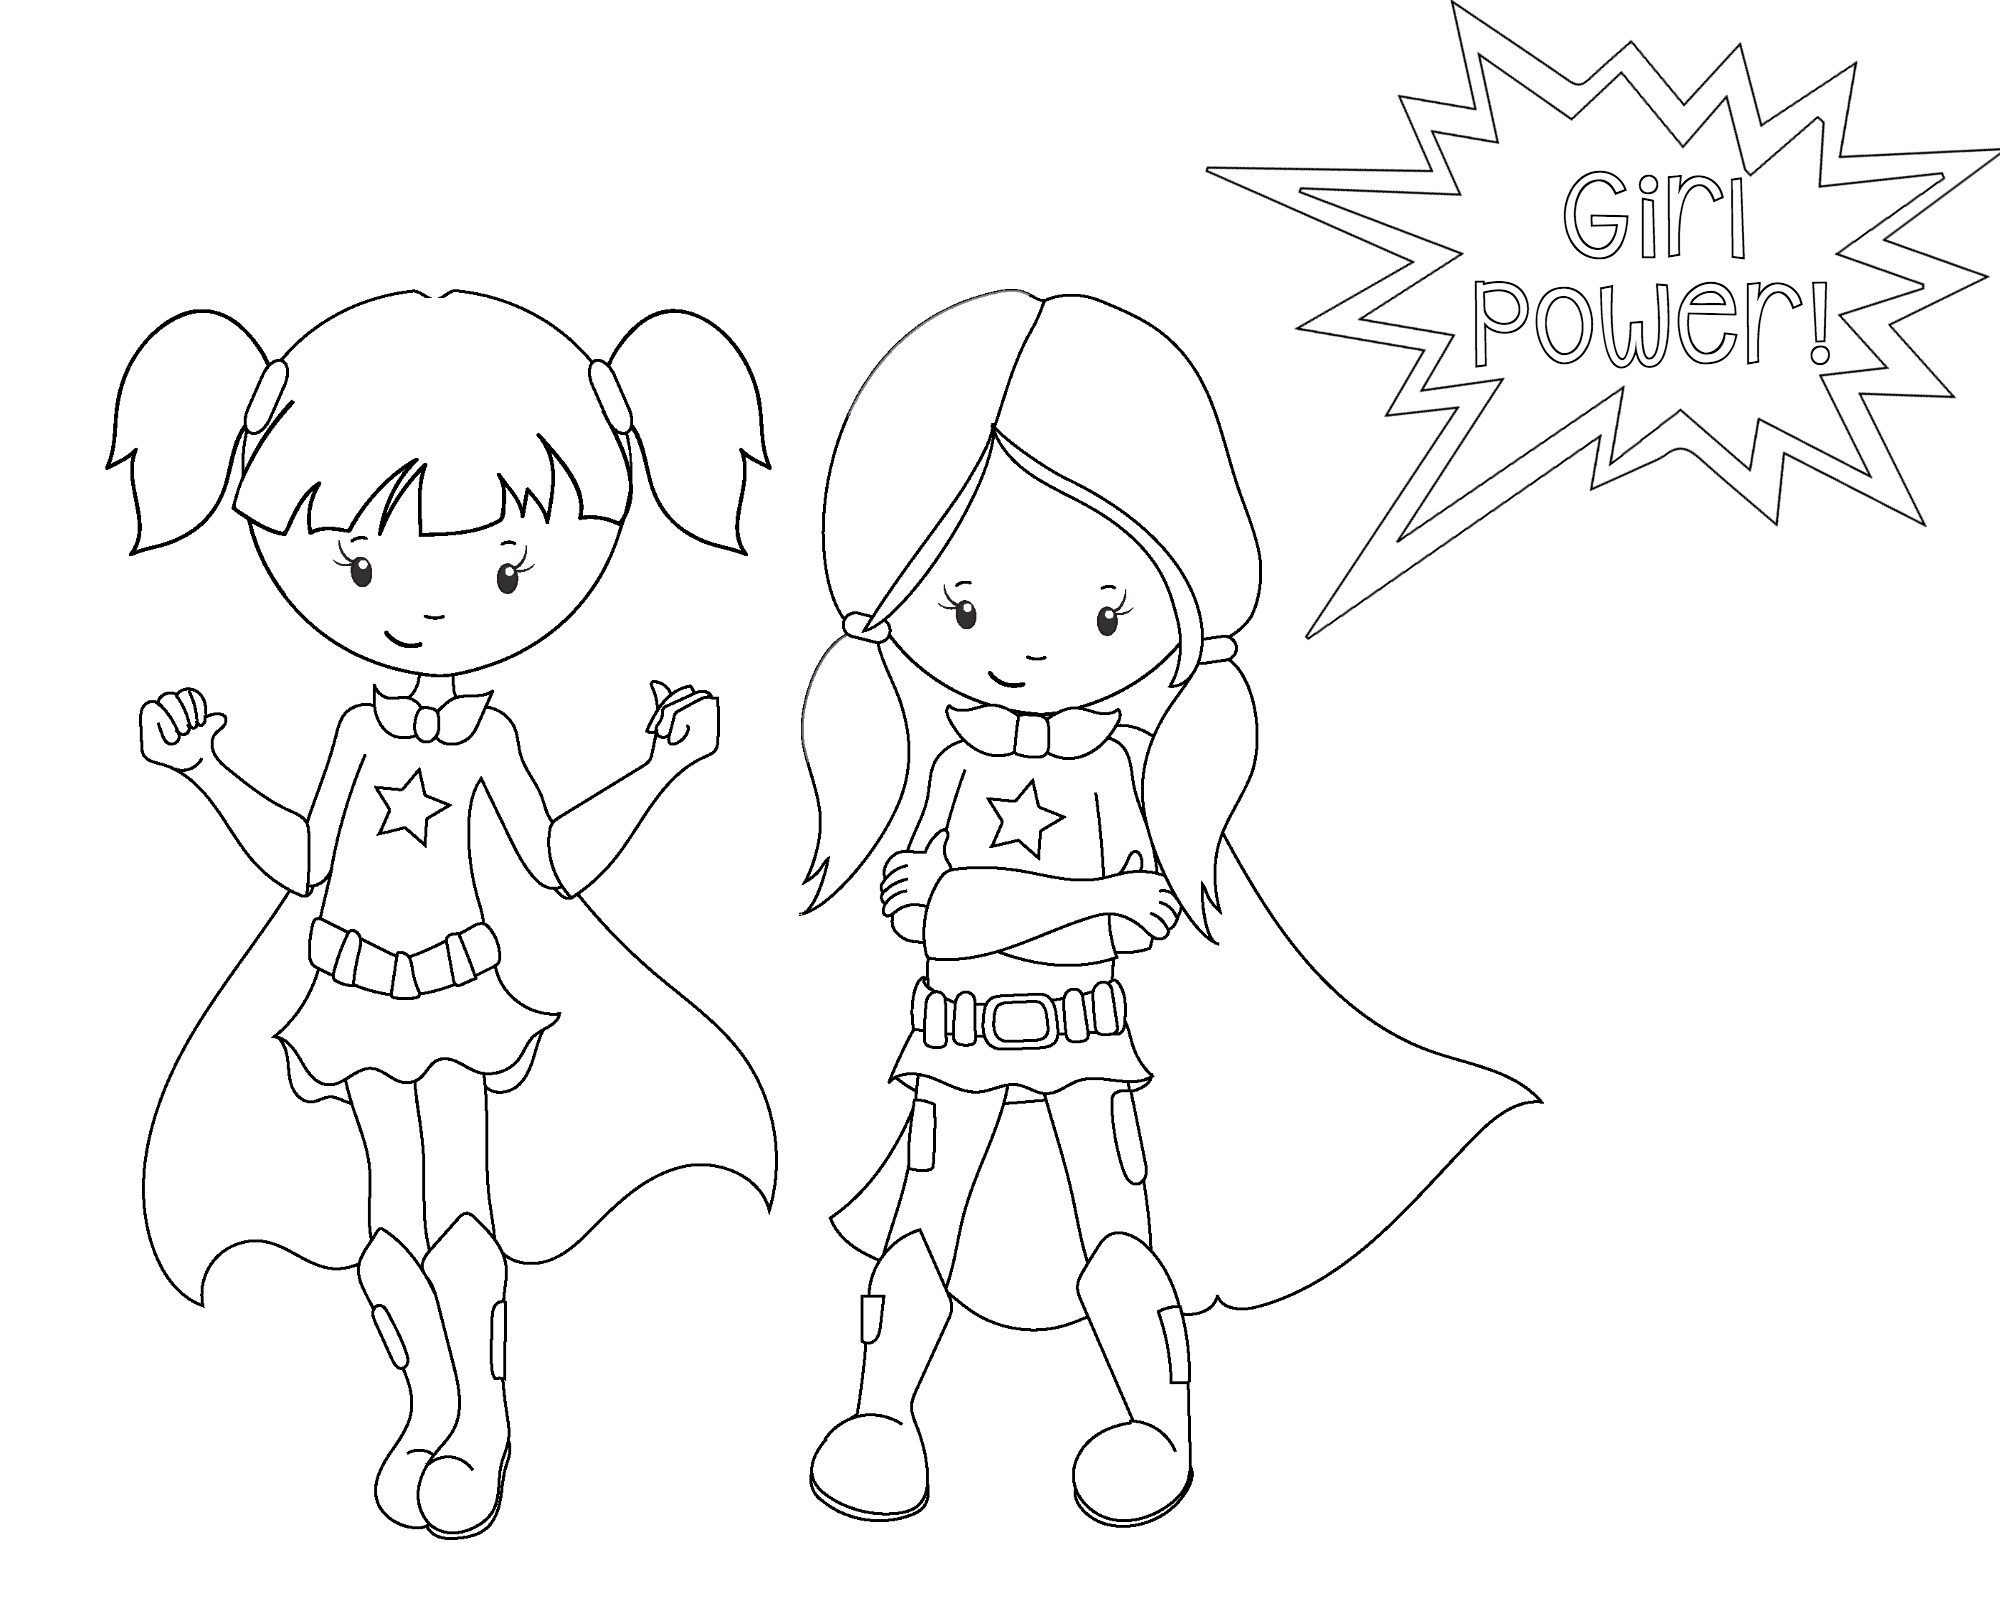 Girl Power Superhero Coloring Page Superhero3